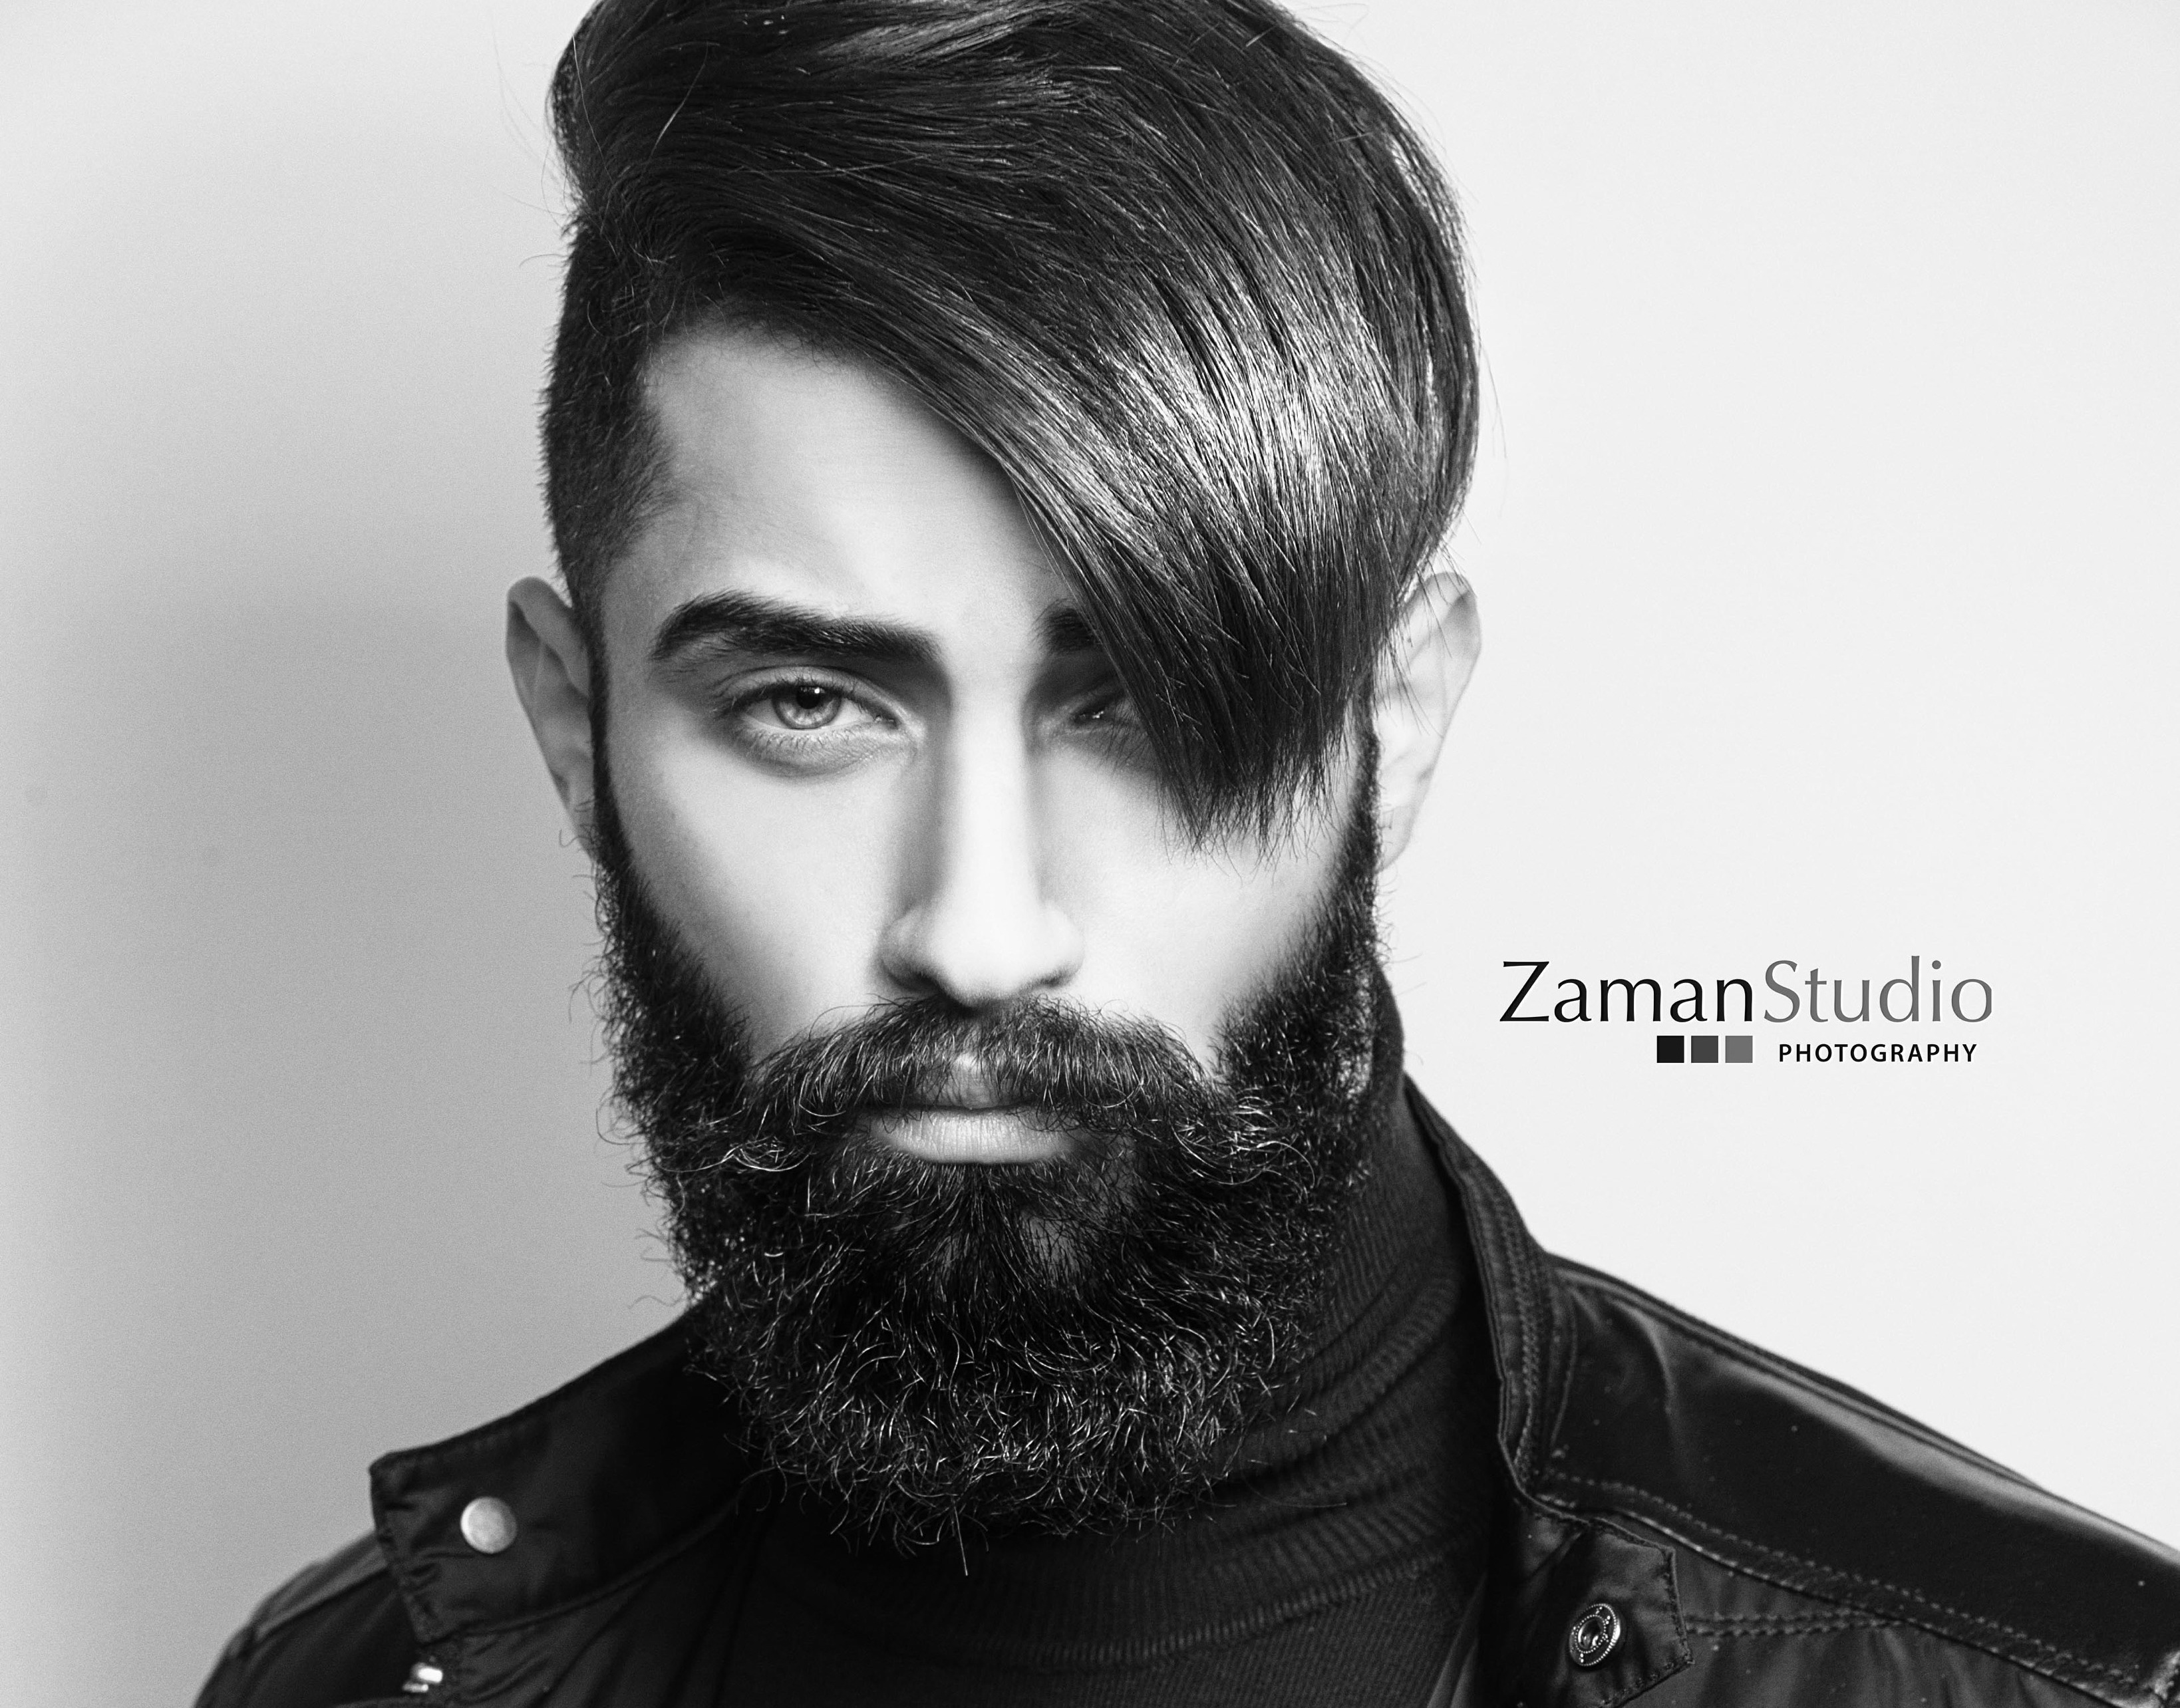 male model hair style ahmed zaman 7911 | 7fd54848 4fc3 4e43 8dc0 a4d53b5d33d9 rwc 0x59x3277x2568x3277